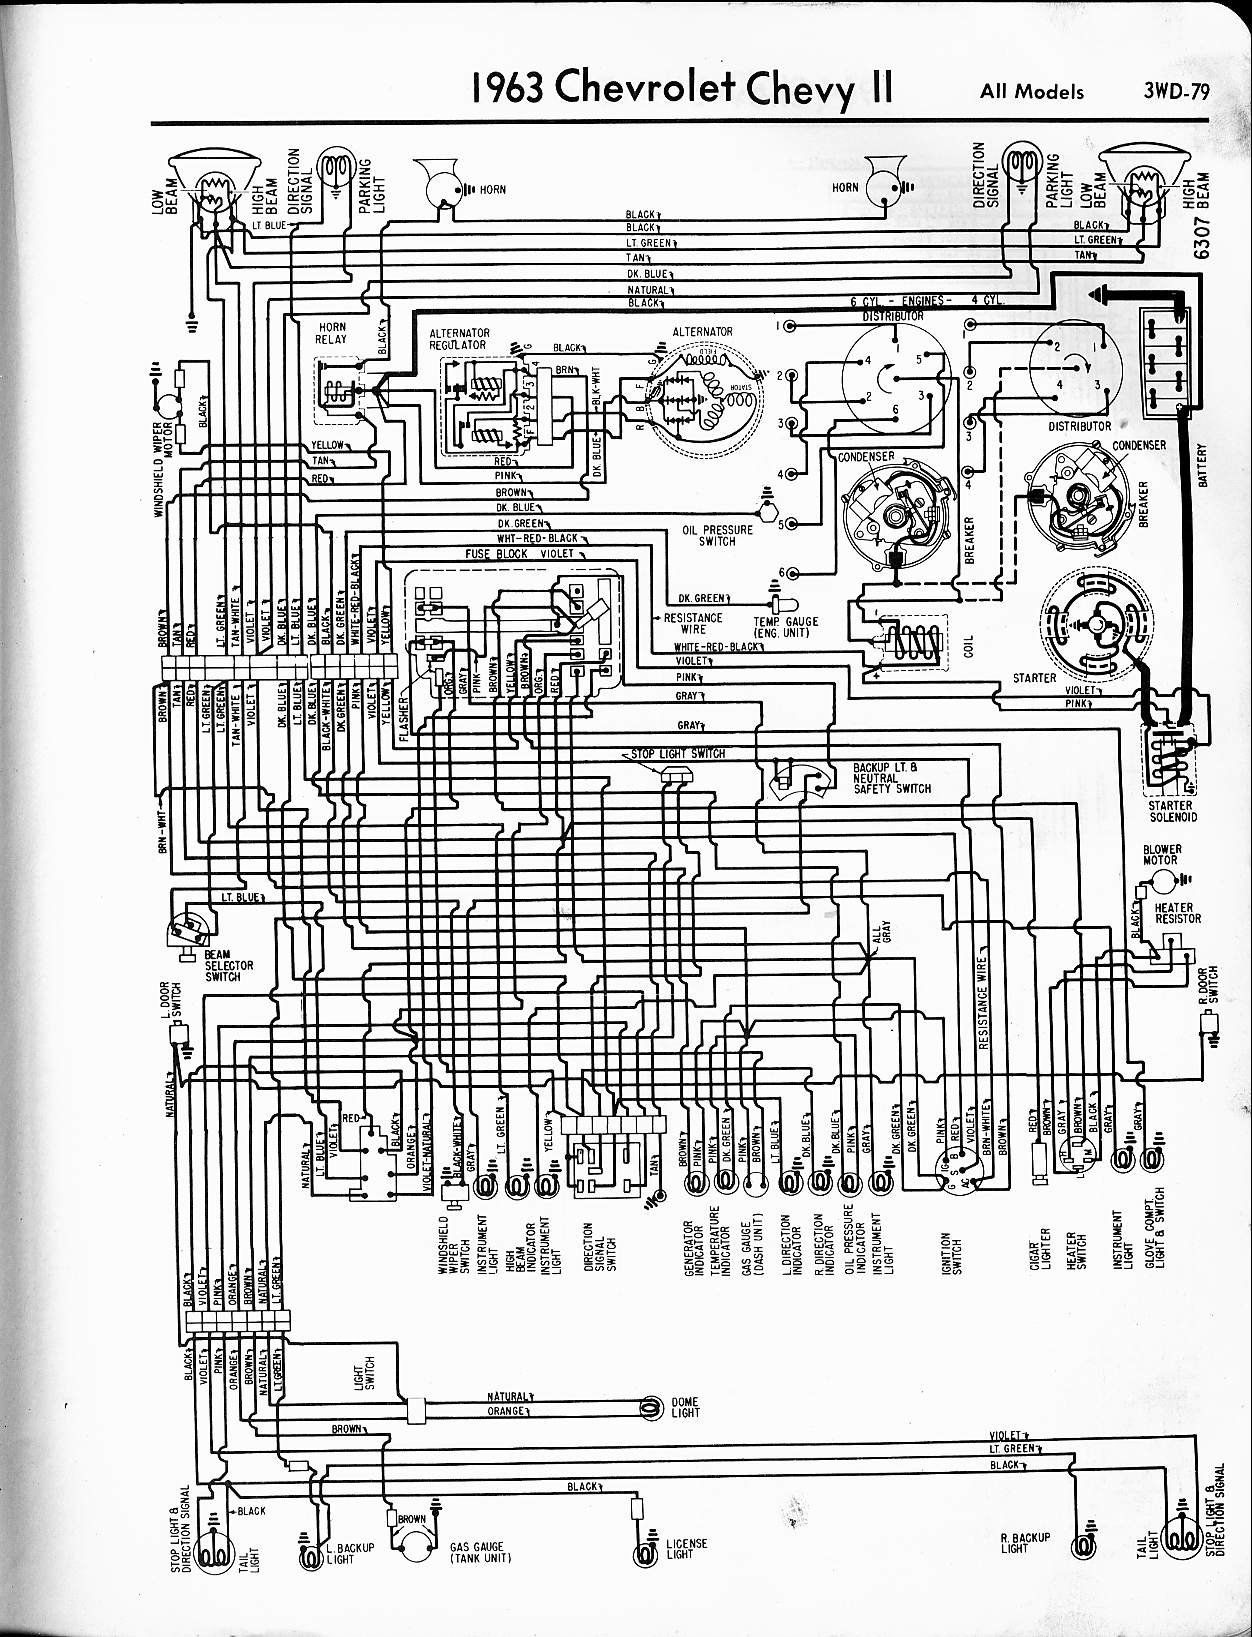 67 chevrolet nova wiring diagram wiring diagram datasource 1967 chevy nova wiring diagram [ 1252 x 1637 Pixel ]